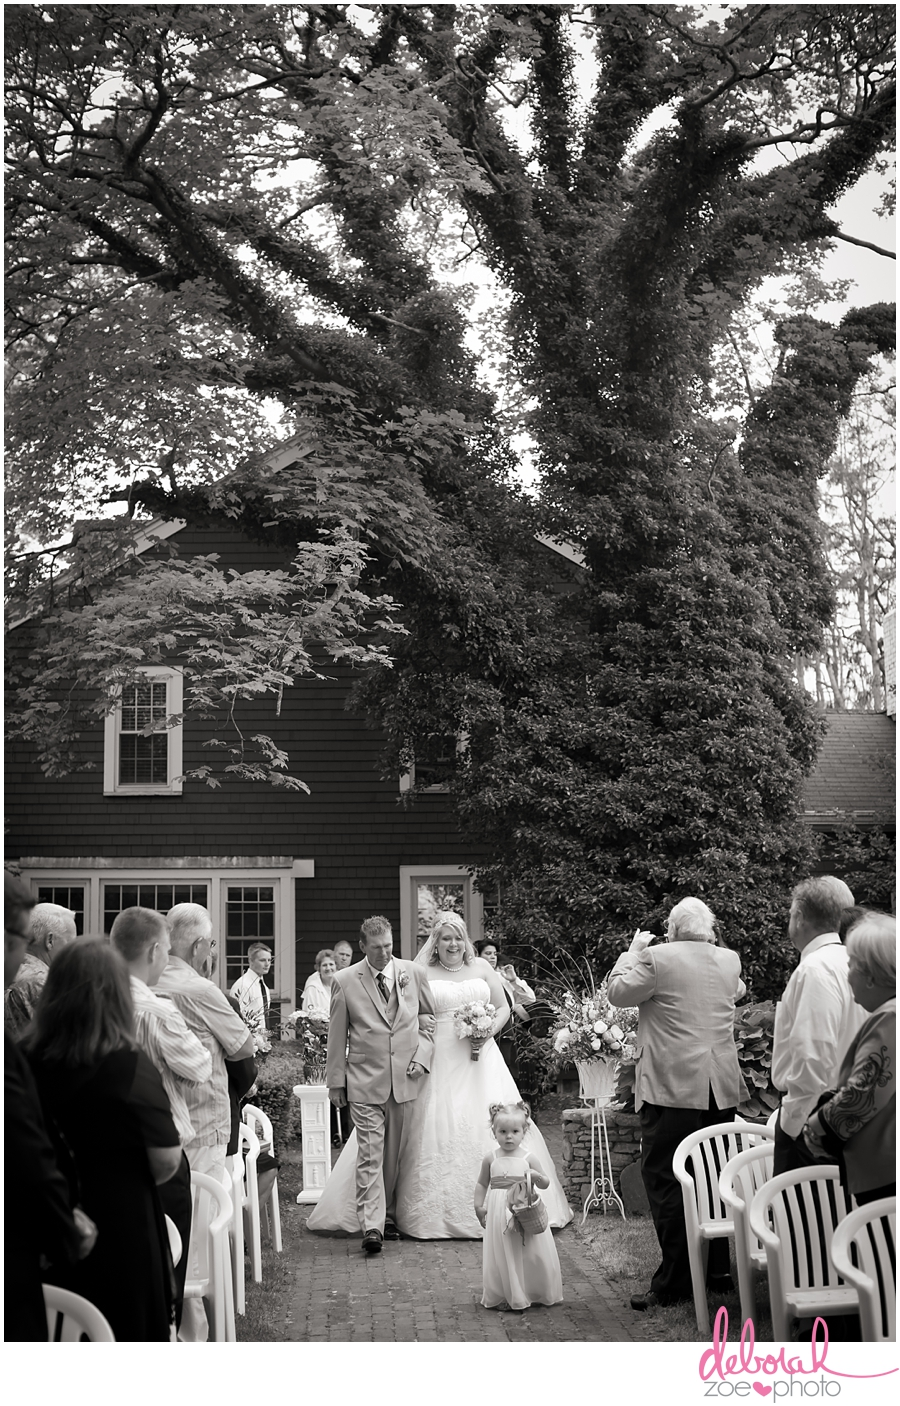 Cape Cod Wedding Massachusetts Wedding Photographer Summer Wedding Outdoor Ceremony Pink Wedding Details Ocean Themed Wedding Coonamessett Inn Wedding Deborah Zoe Photo018